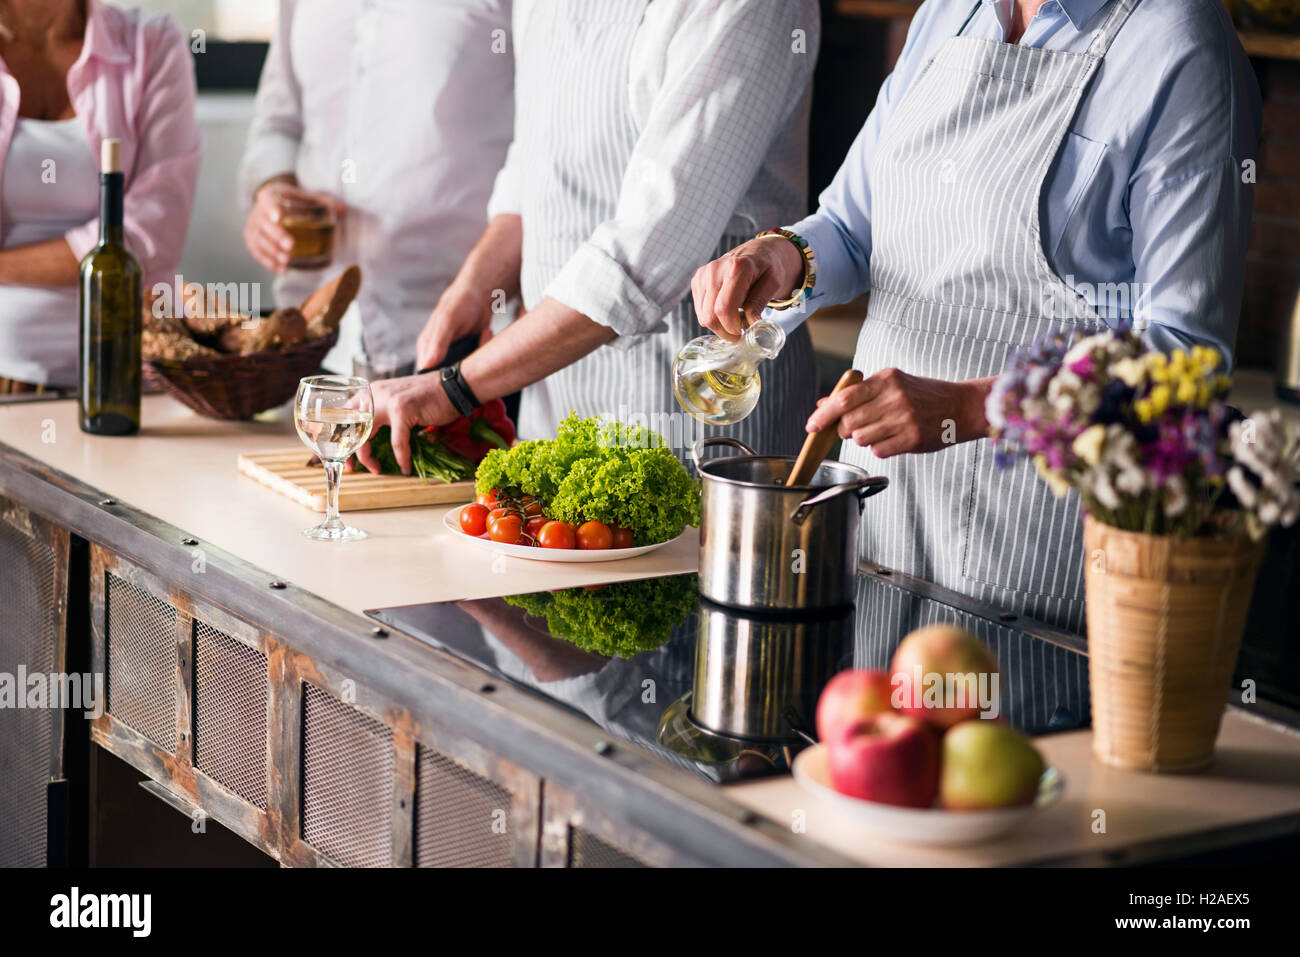 Family and friends cooking food at dinner table - Stock Image